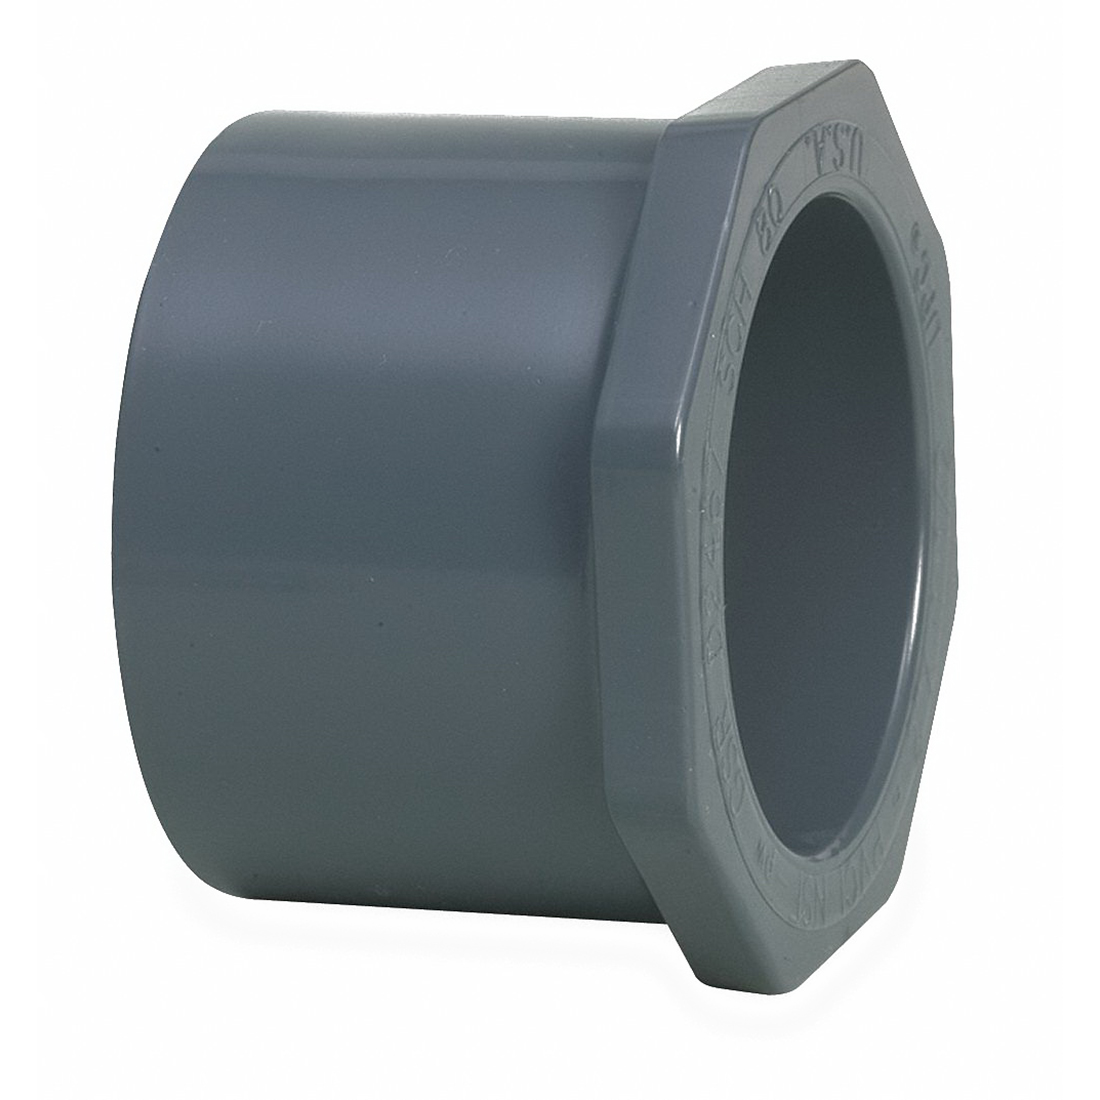 Gray PVC SCH 80 Flush Style Reducer Bushing, 1-1/4 in x 3/4 in, Spigot x Socket